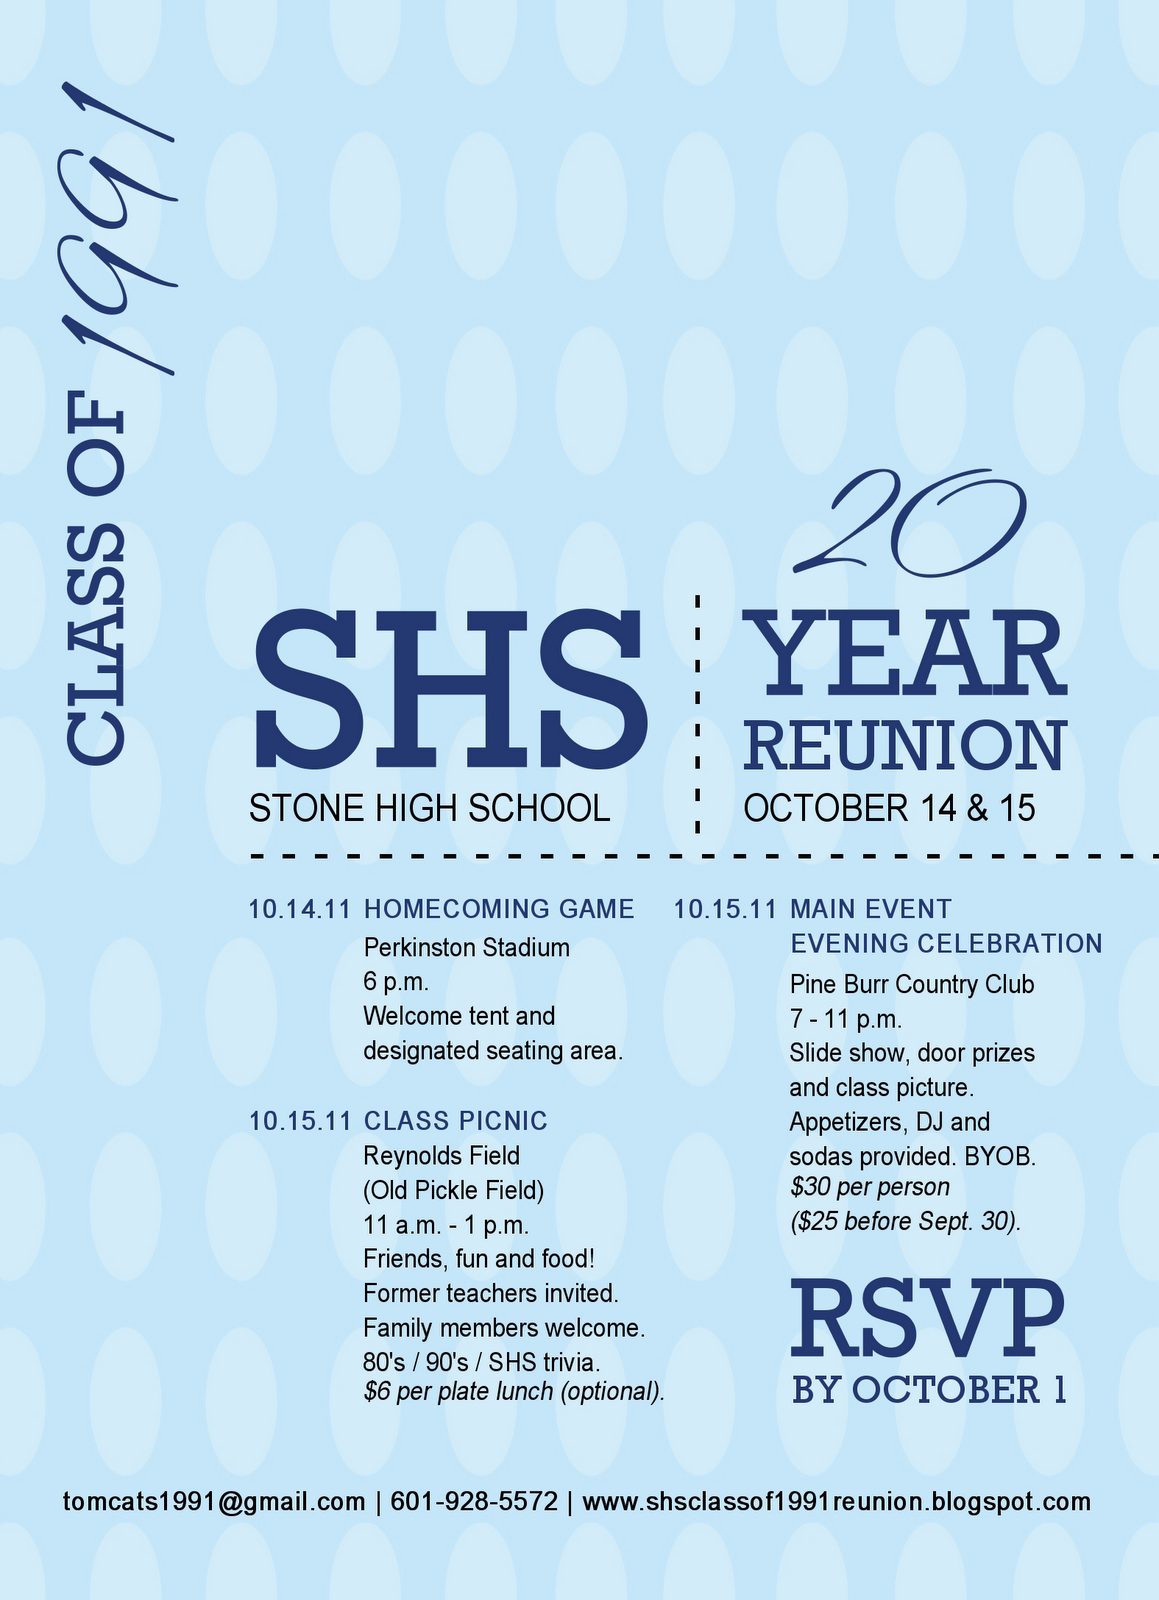 stone high class of 1991 20 year reunion  reunion